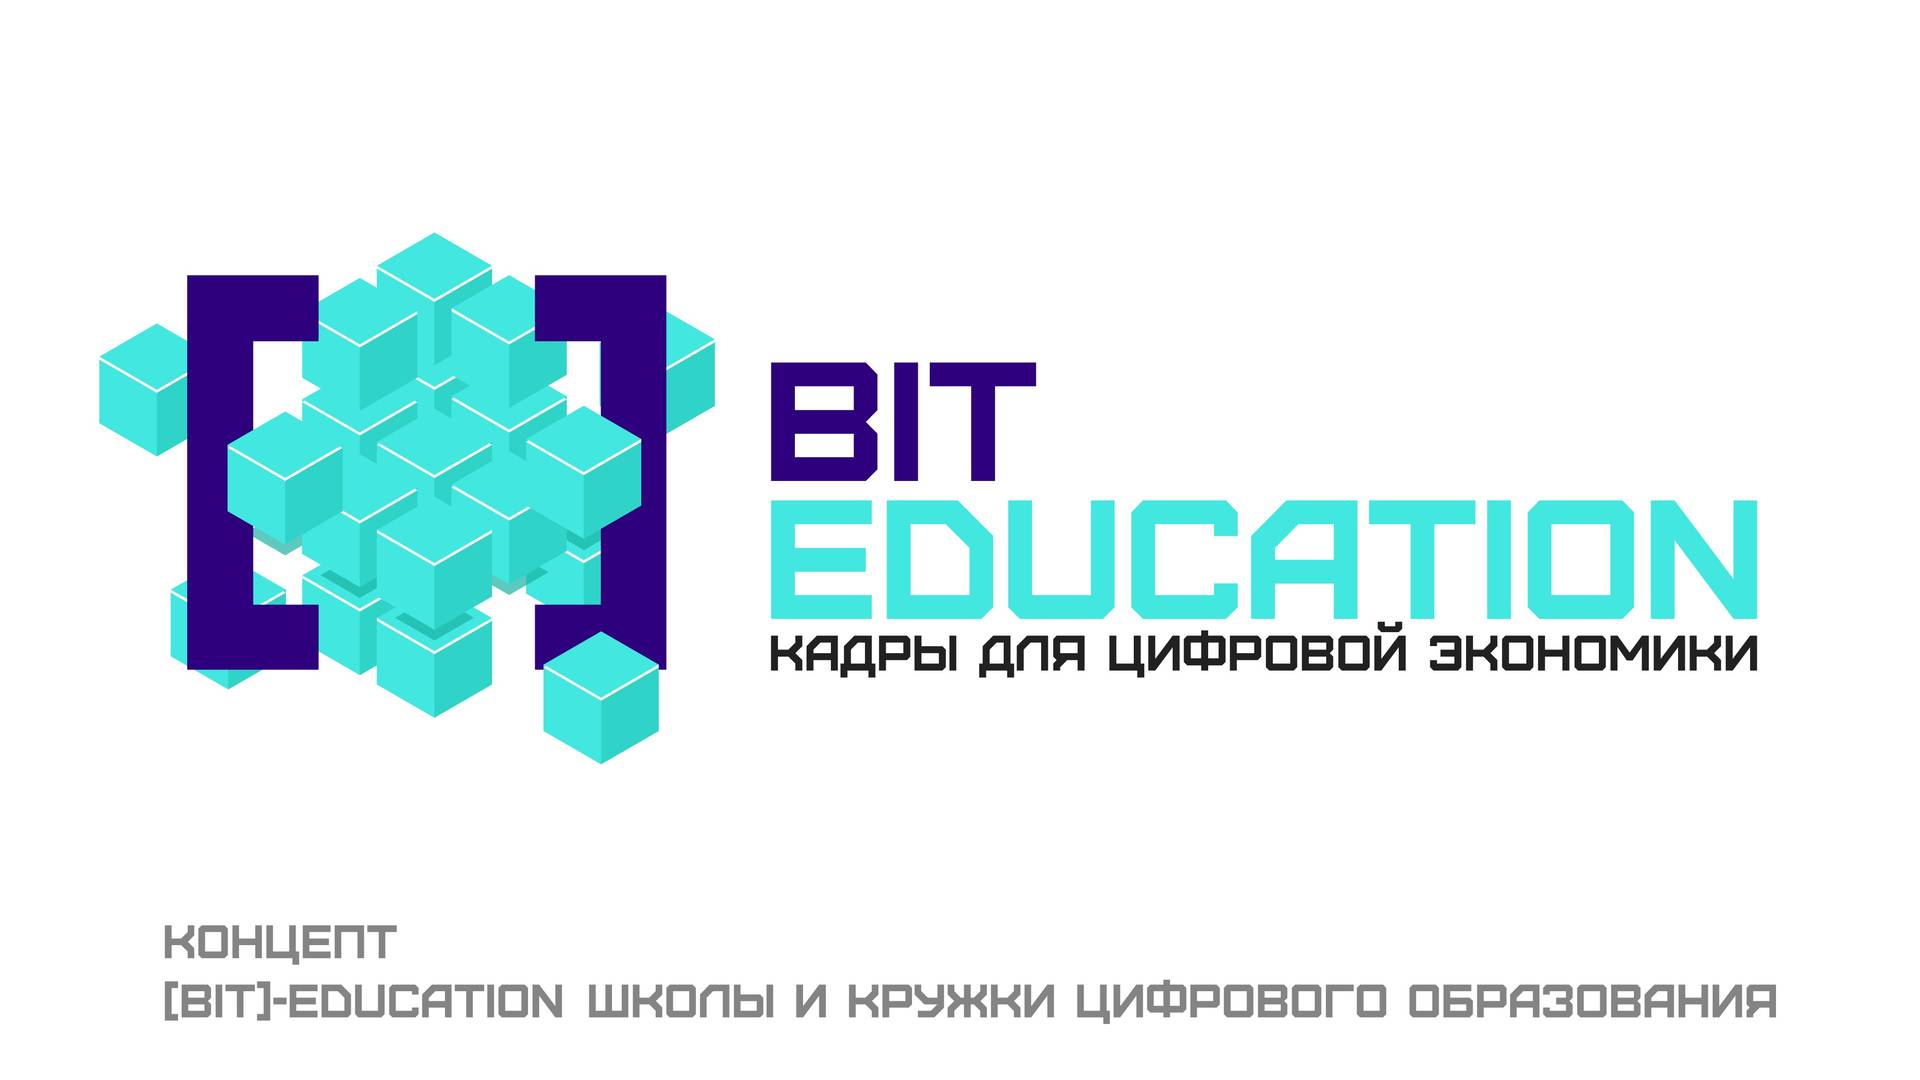 bit-education-001_1.jpg (71 KB)